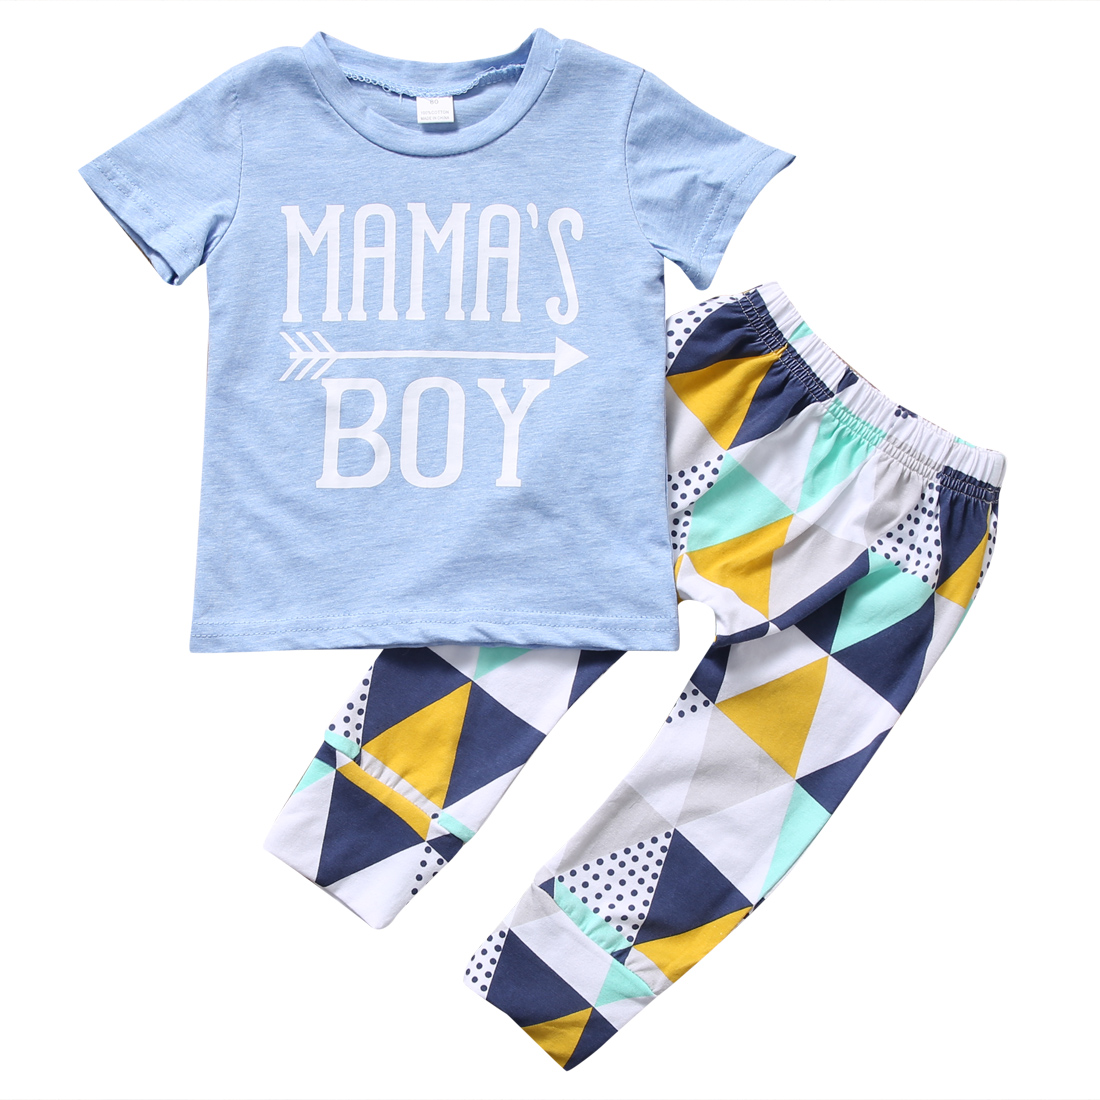 2PCS Newborn Baby Boys Outfits T-shirt Tops+ Pants Sets Clothes Summer Short Sleeve Mama Boy Print Tees Casual Clothes original vaporesso revenger x 220w tc kit with 5ml nrg tank and revenger x mod box vaporesso electronic cigarettes vape kit